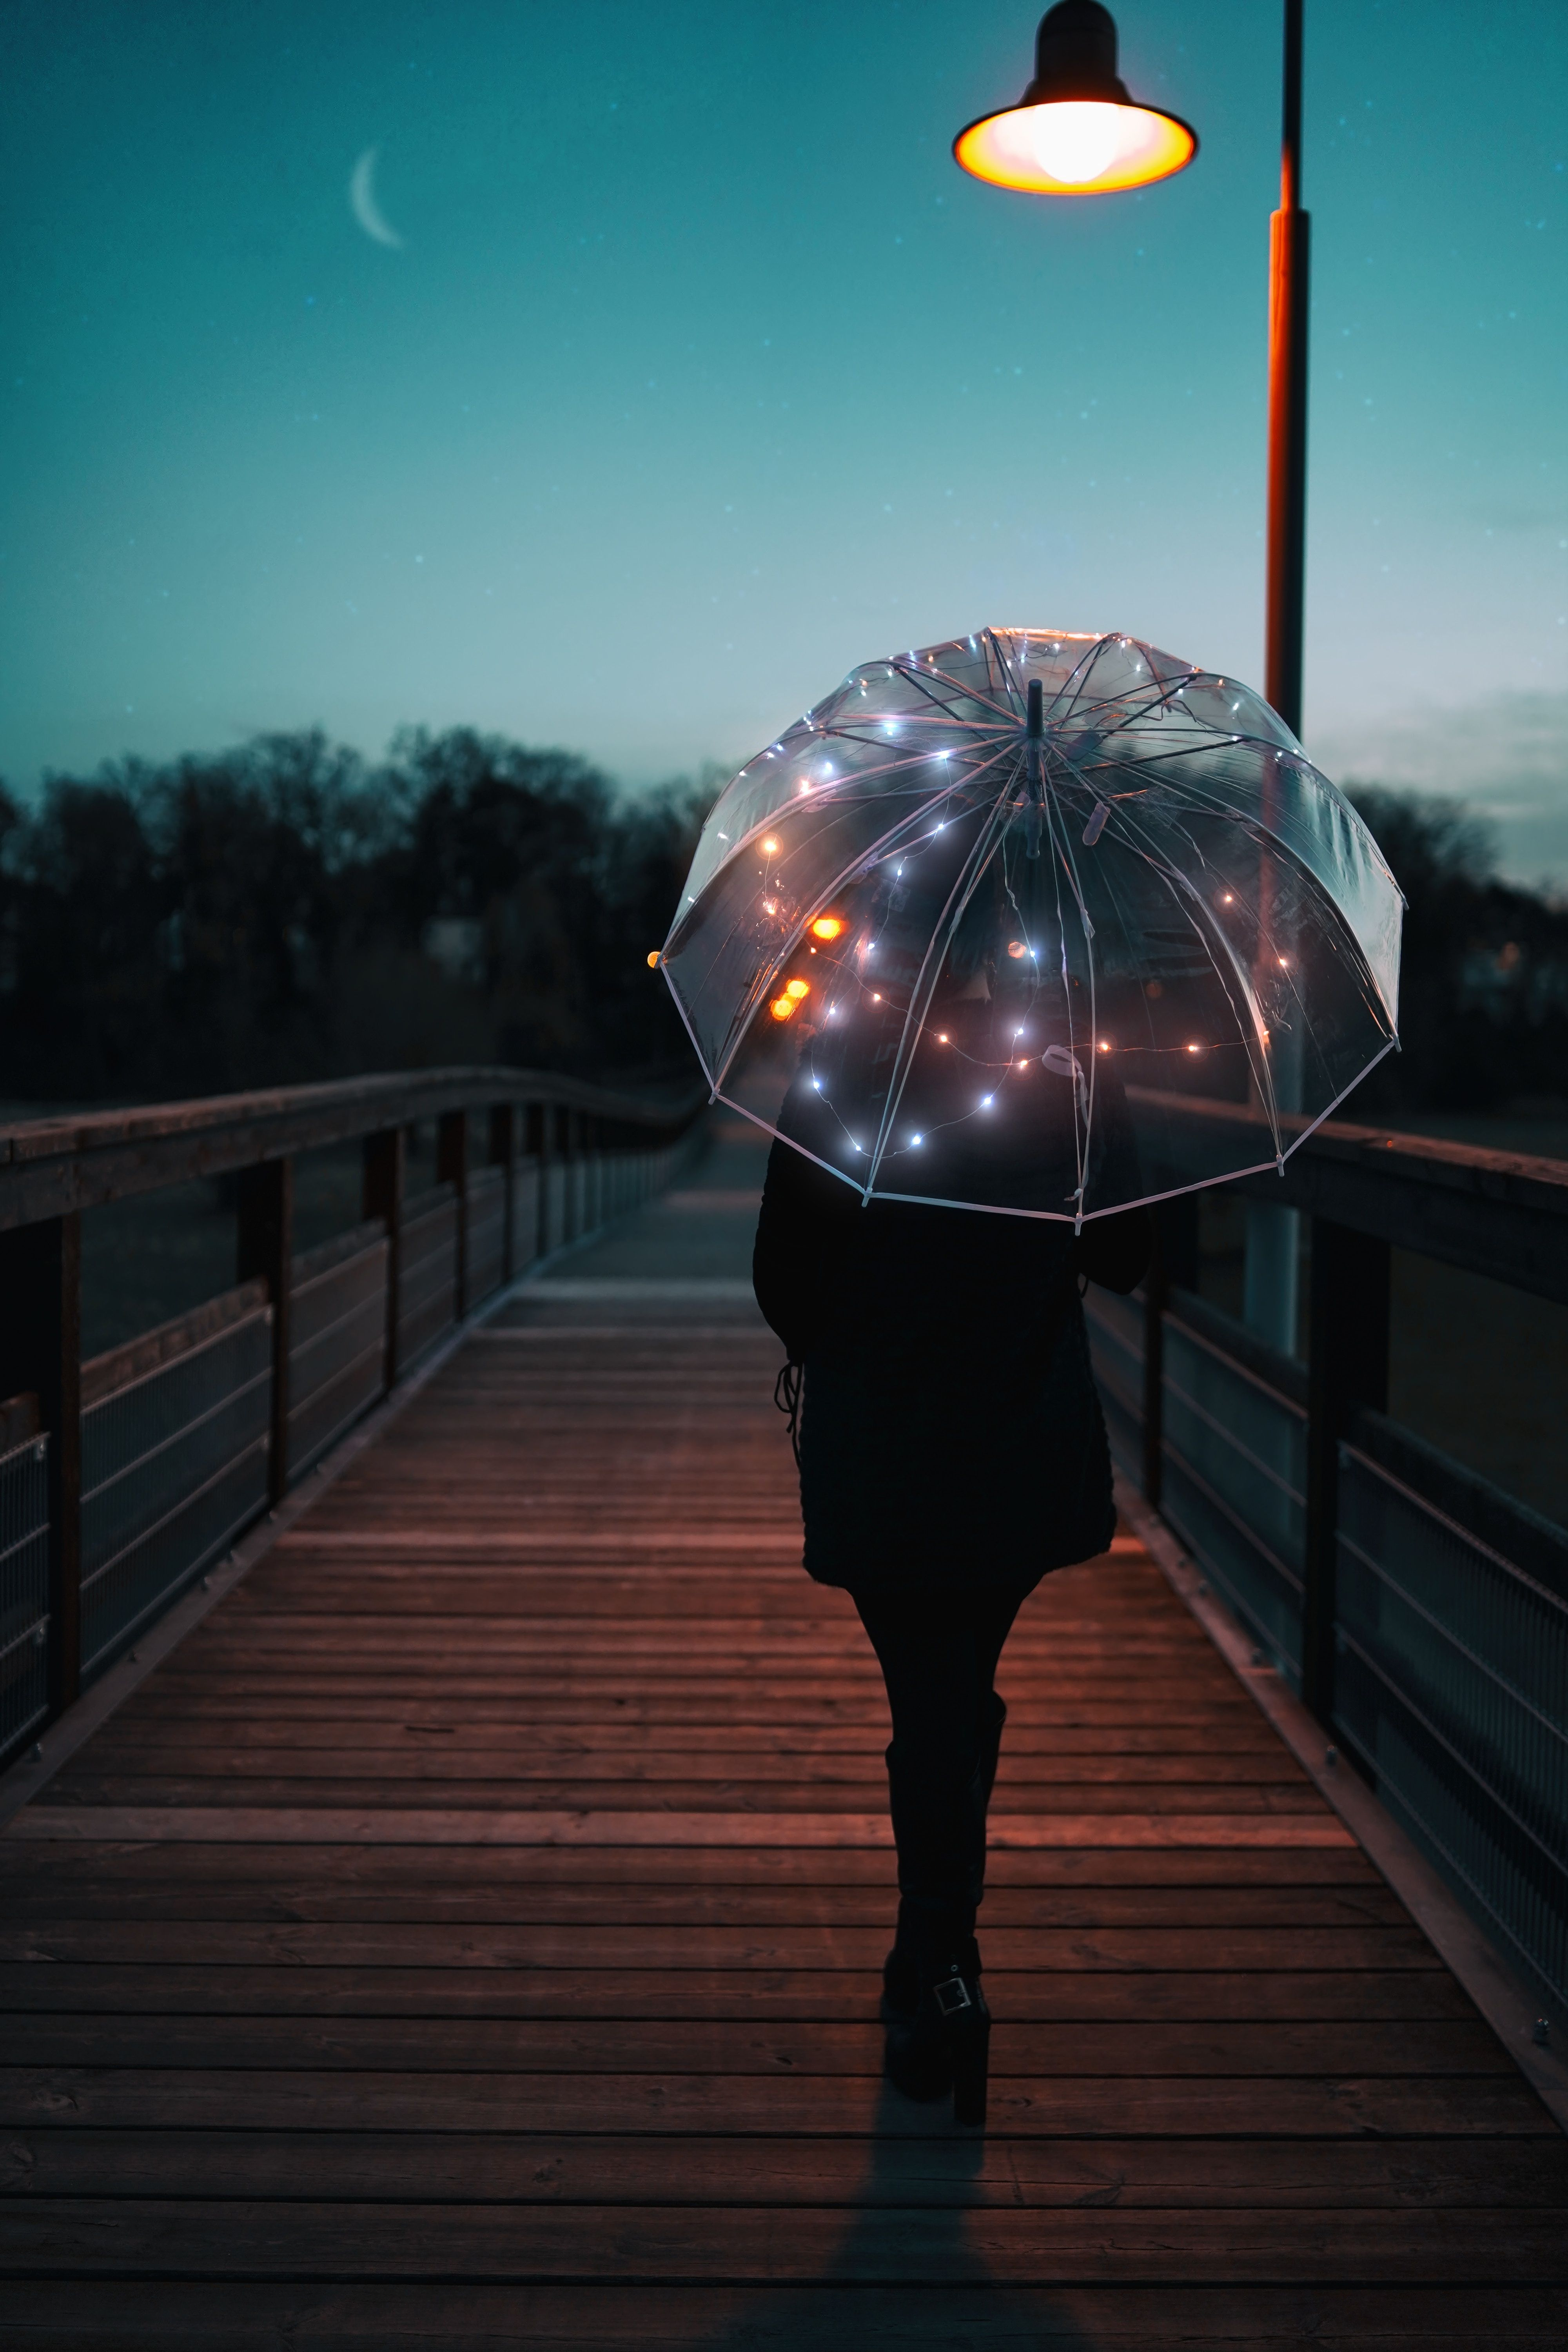 Wallpapers Reflection World Video Girl Night Dream Pictures Umbrella Wallpaper